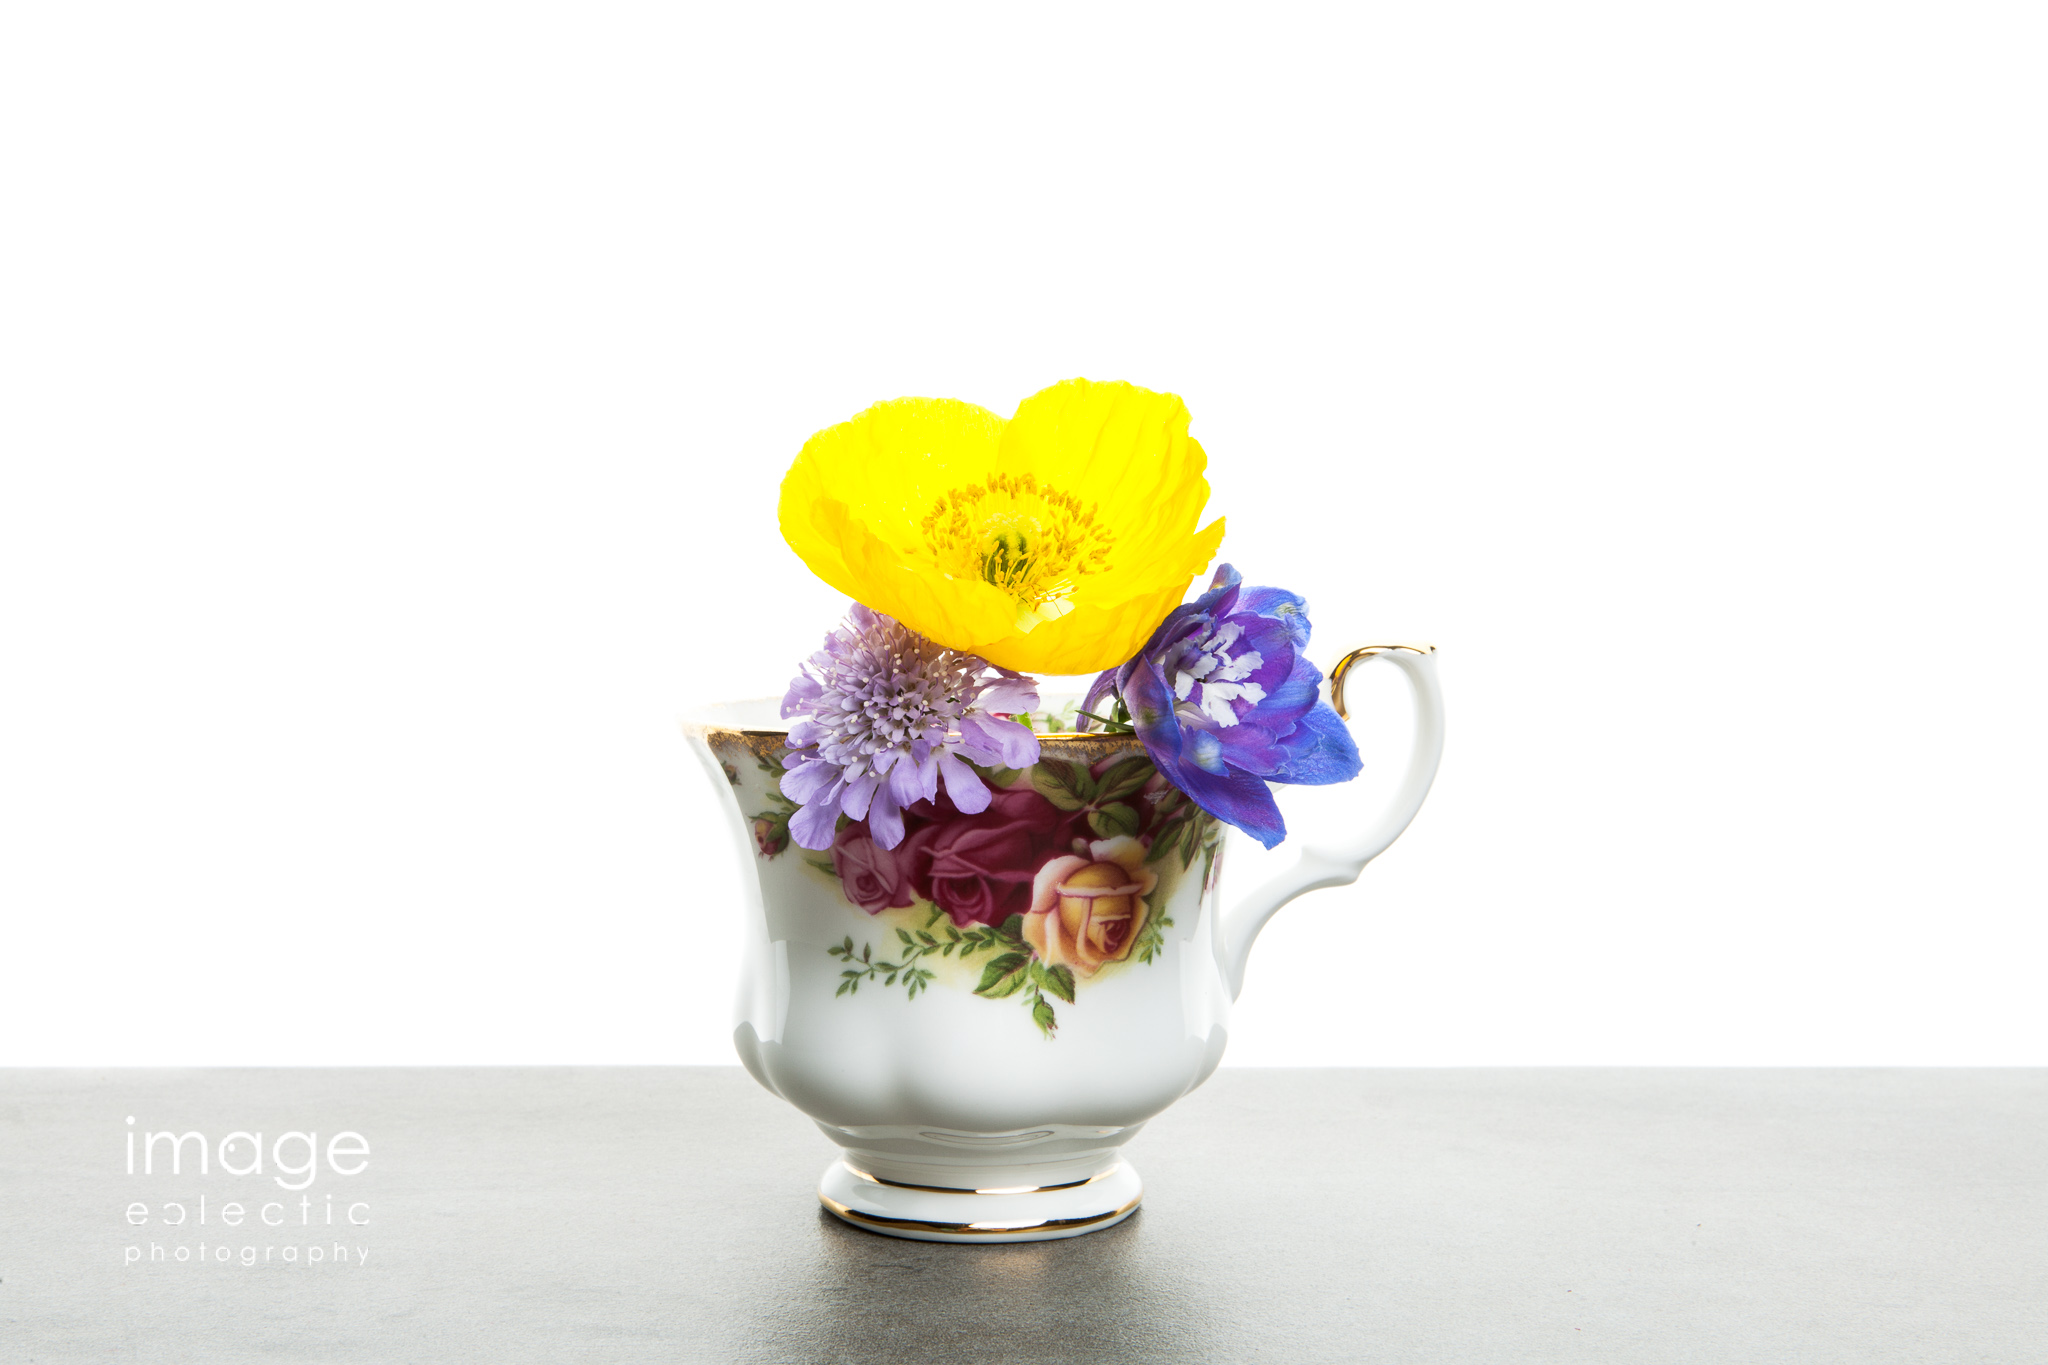 Cup & Blossoms